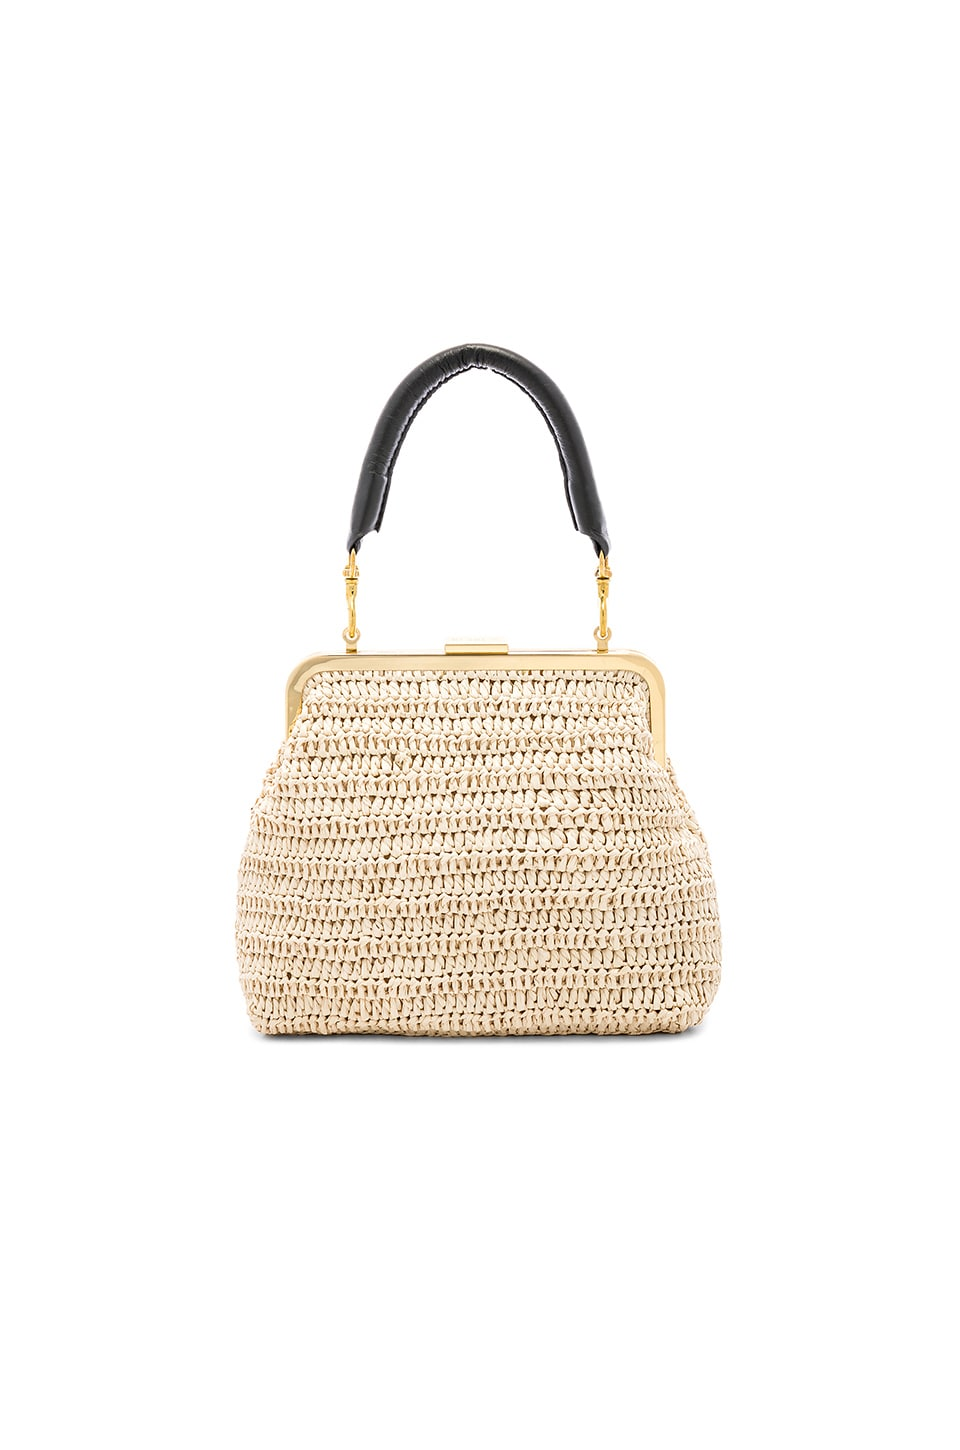 Clare V. Flore Bag in Cream Raffia